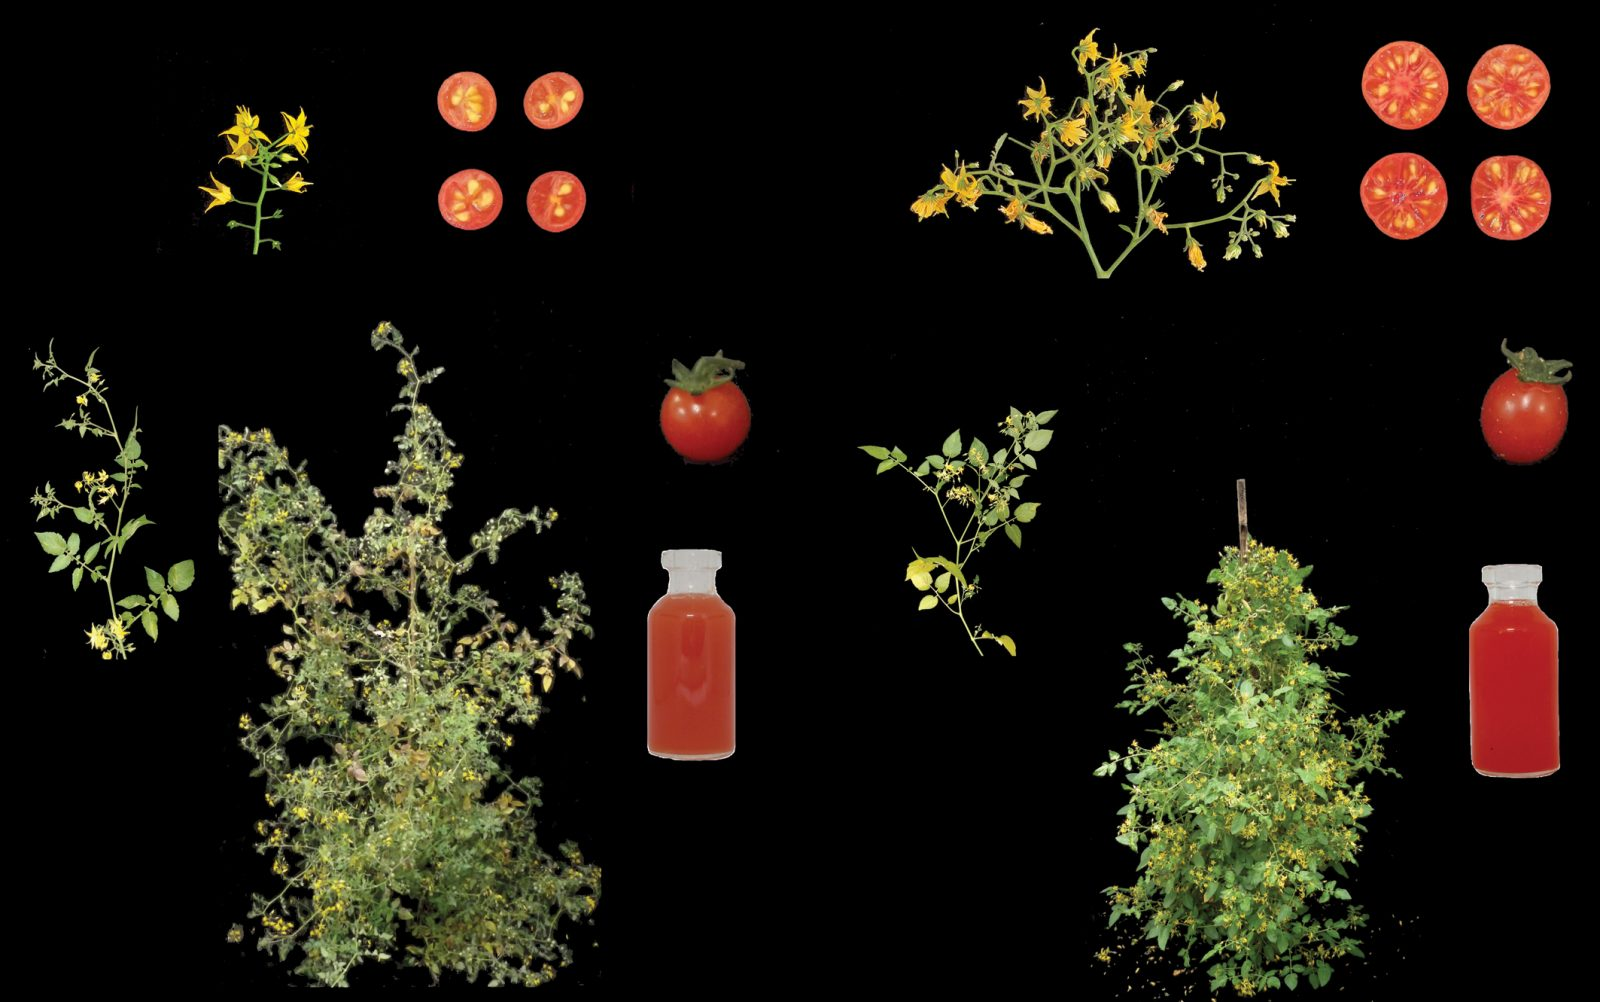 Pioneering Biologists Create a New Crop Through Genome Editing